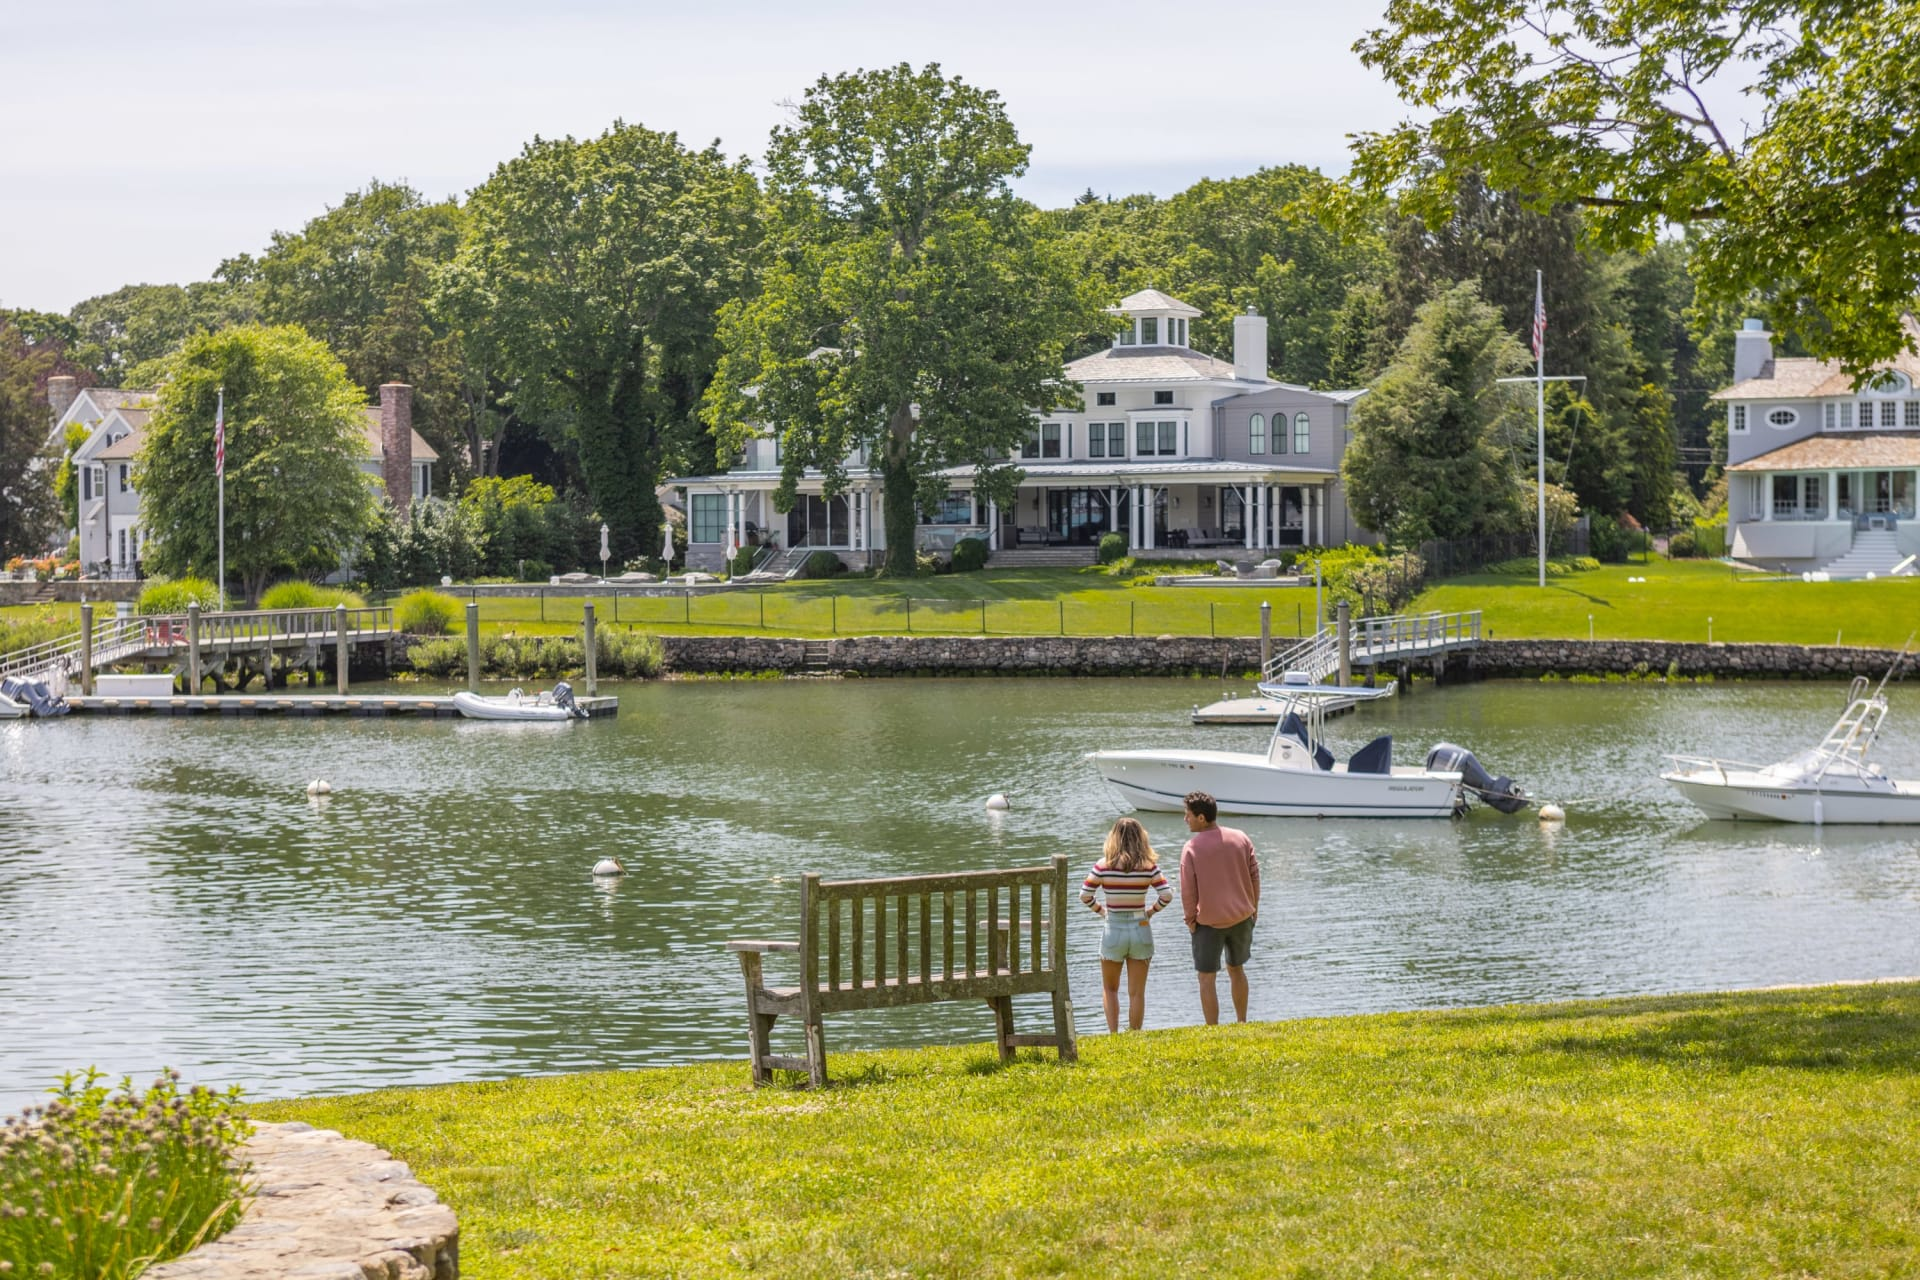 Gold Coast Waterfront Series Part 4: Best Fairfield County Waterfront Homes with Deep Water Docks